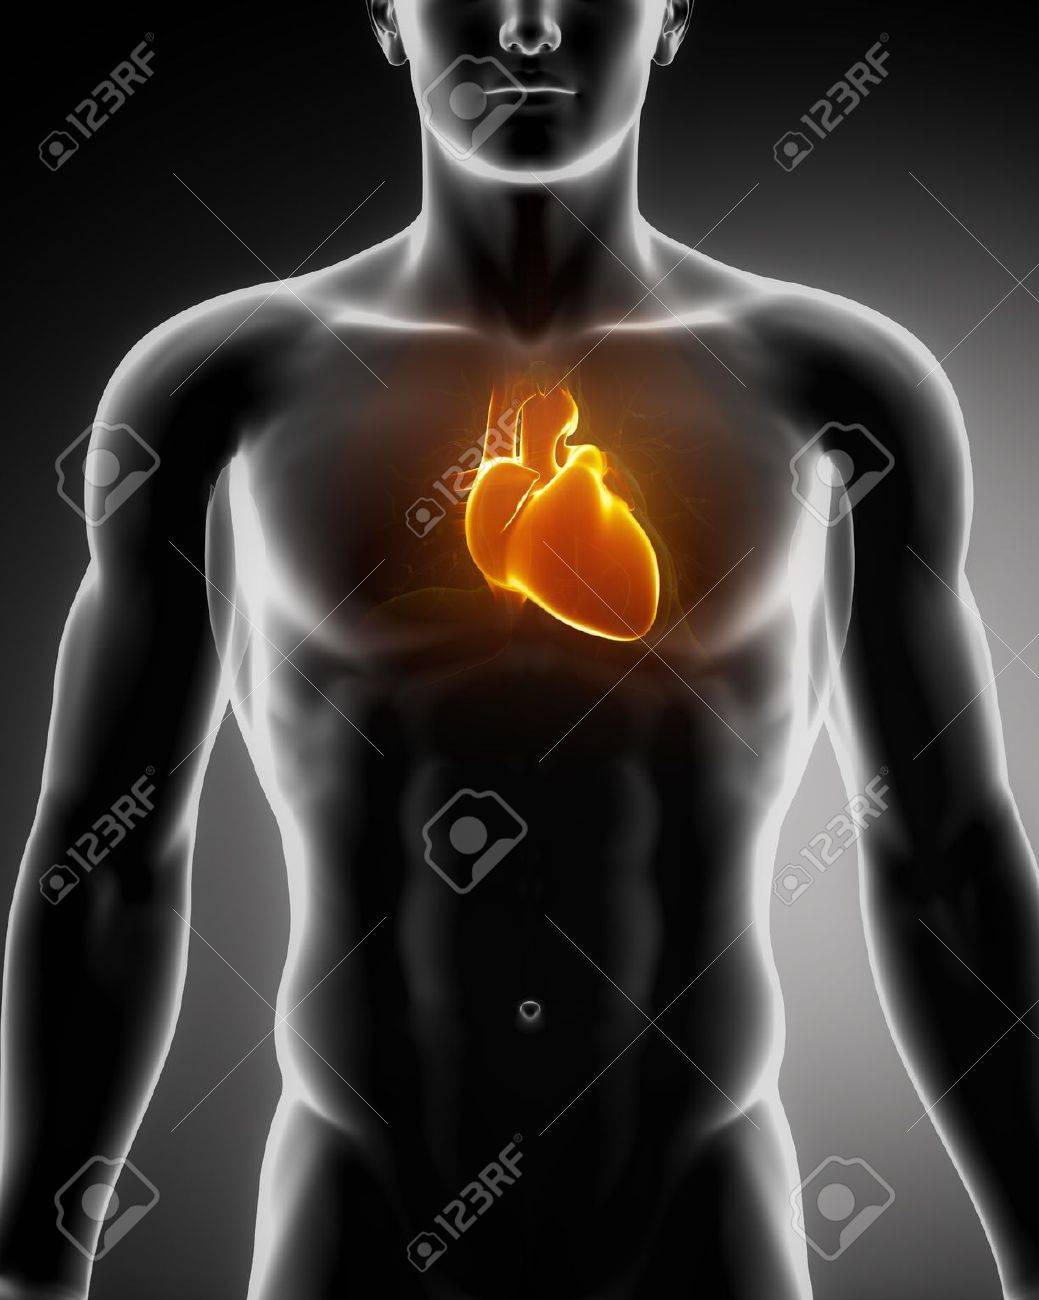 Male Heart Anatomy Of Human Organs In X-ray View Stock Photo ...